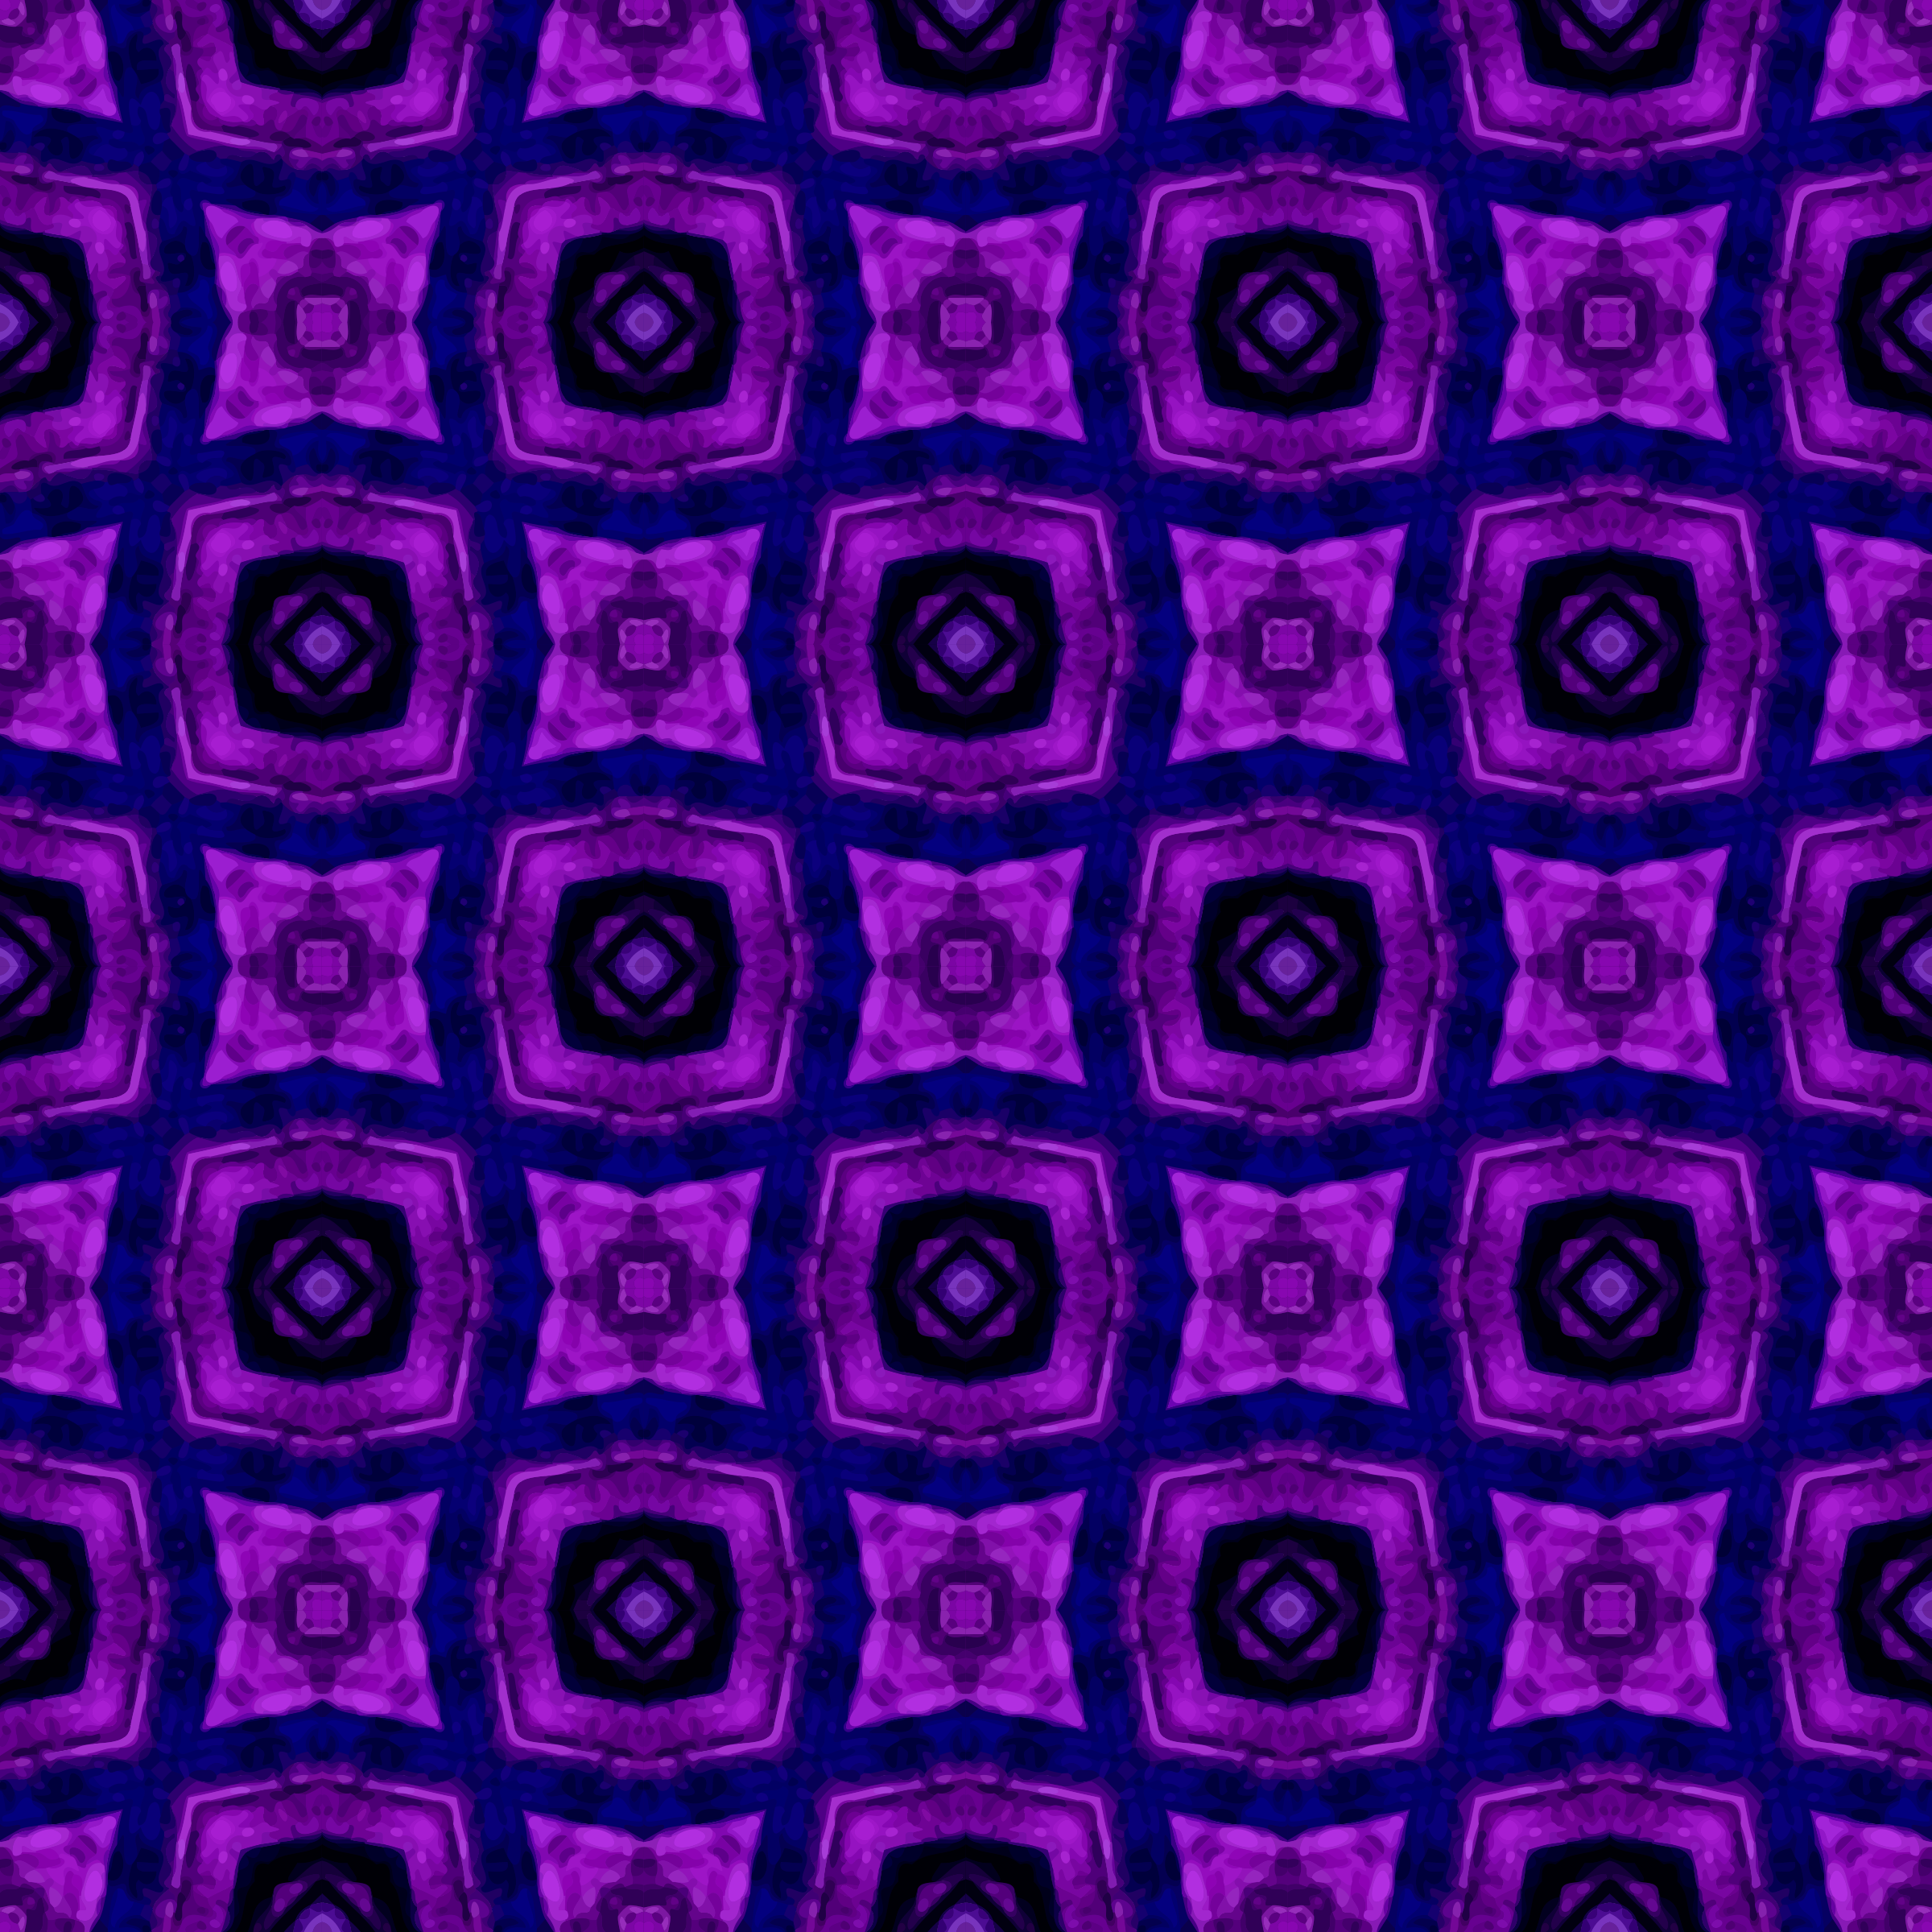 Background pattern 159 (colour 3) by Firkin